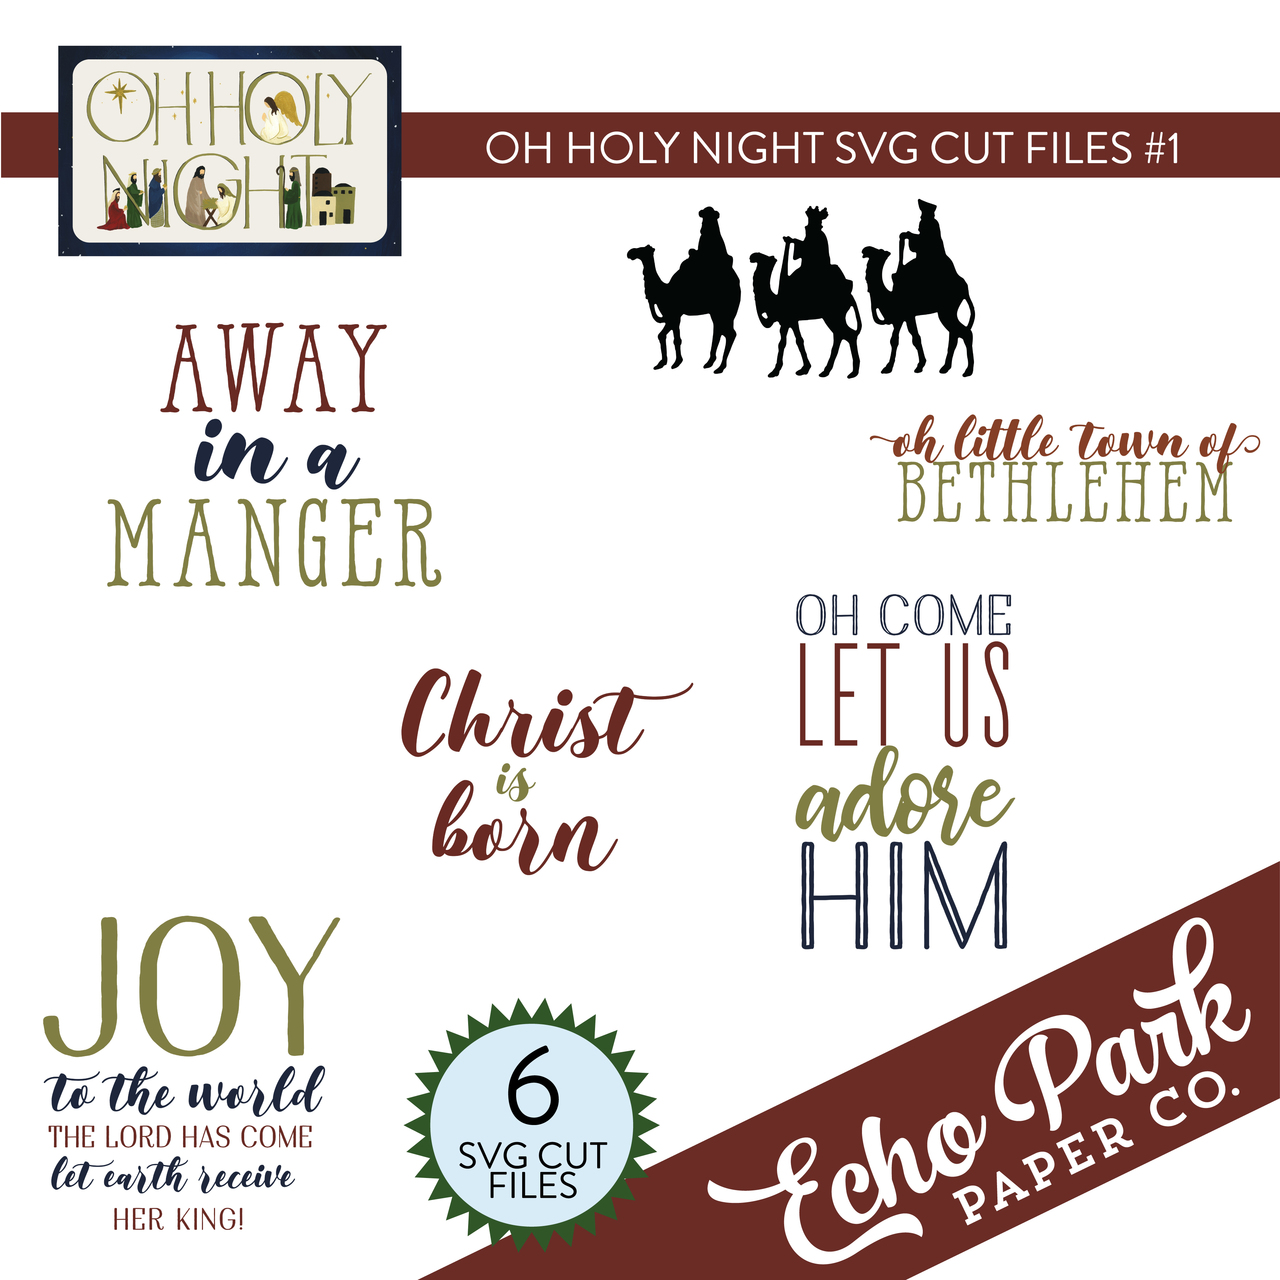 Oh Holy Night SVG Cut File #1